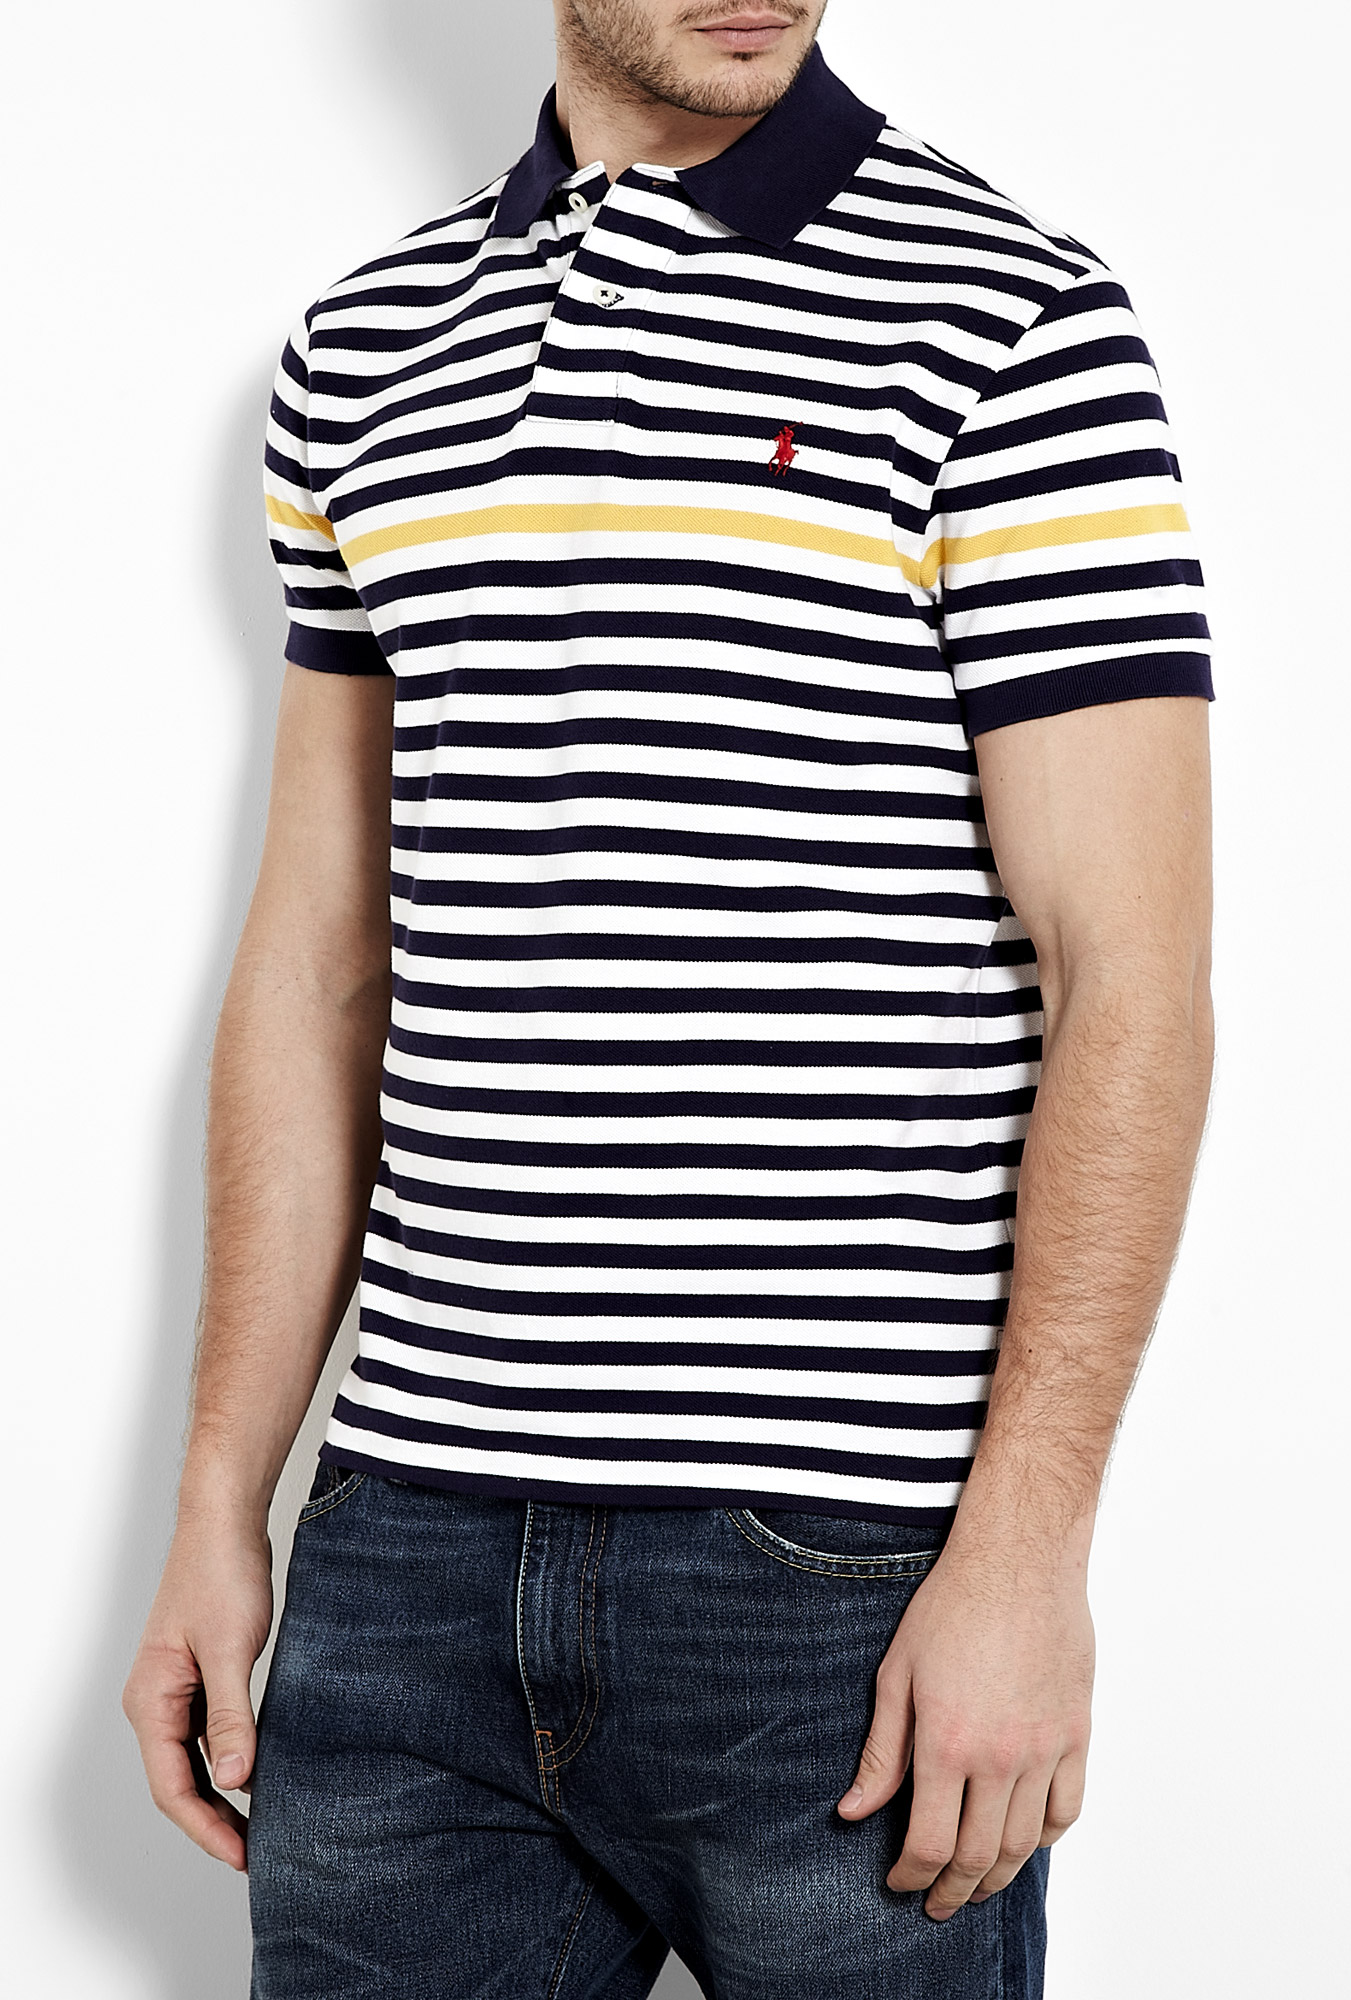 Mens polo ralph lauren polo t shirt in navy blue and white for Mens navy polo shirt